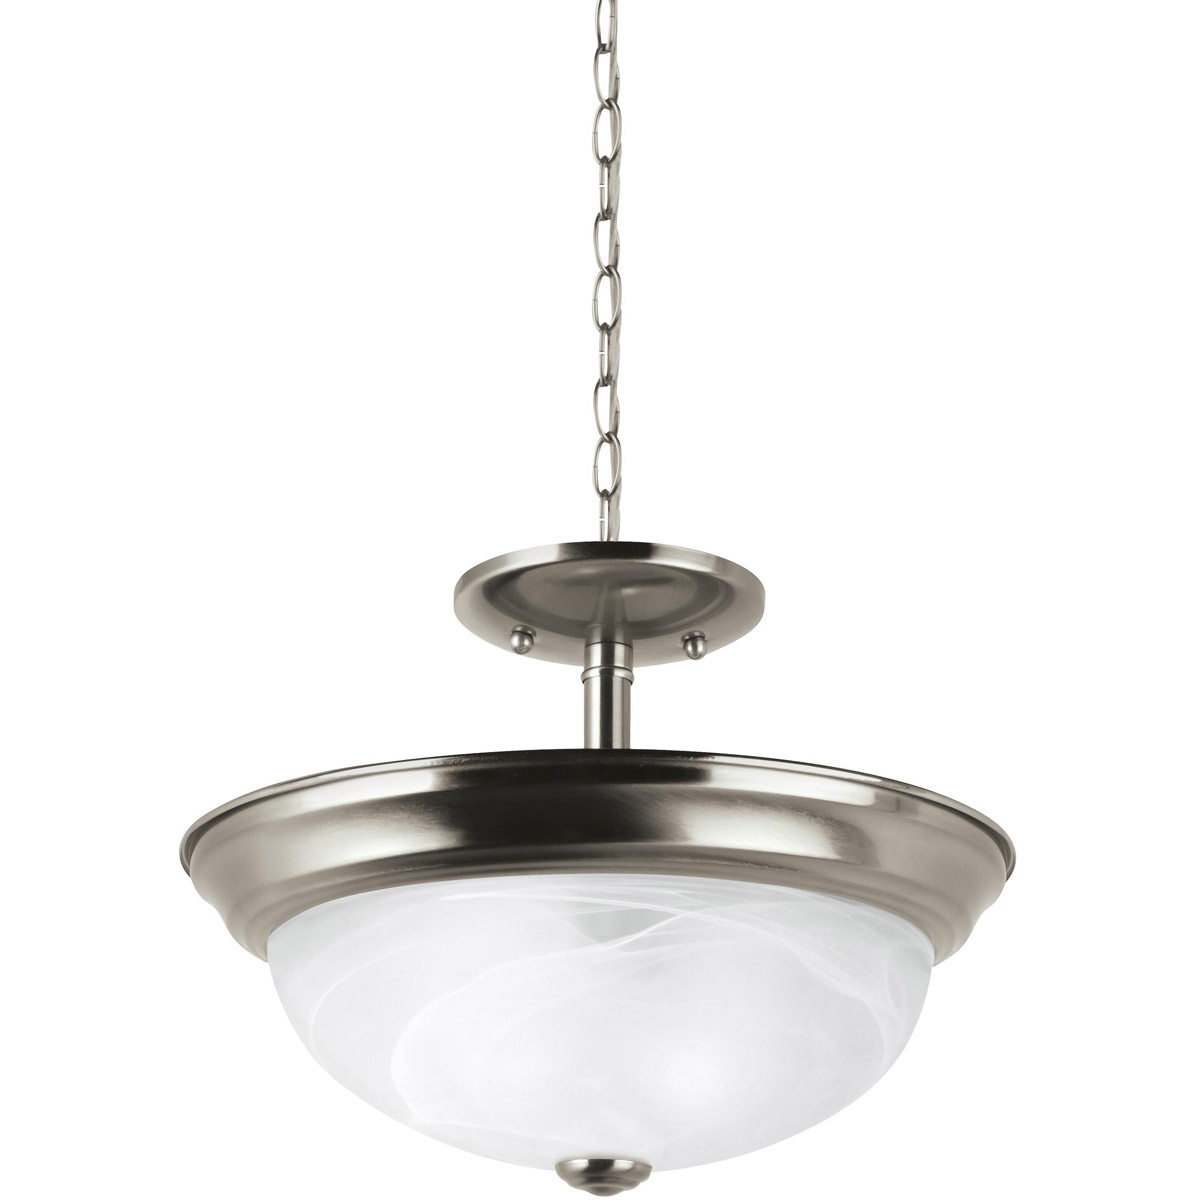 Sea Gull 77950-962 Windgate 2 Light 12 inch Brushed Nickel Semi-Flush Mount Ceiling Light in Standard photo